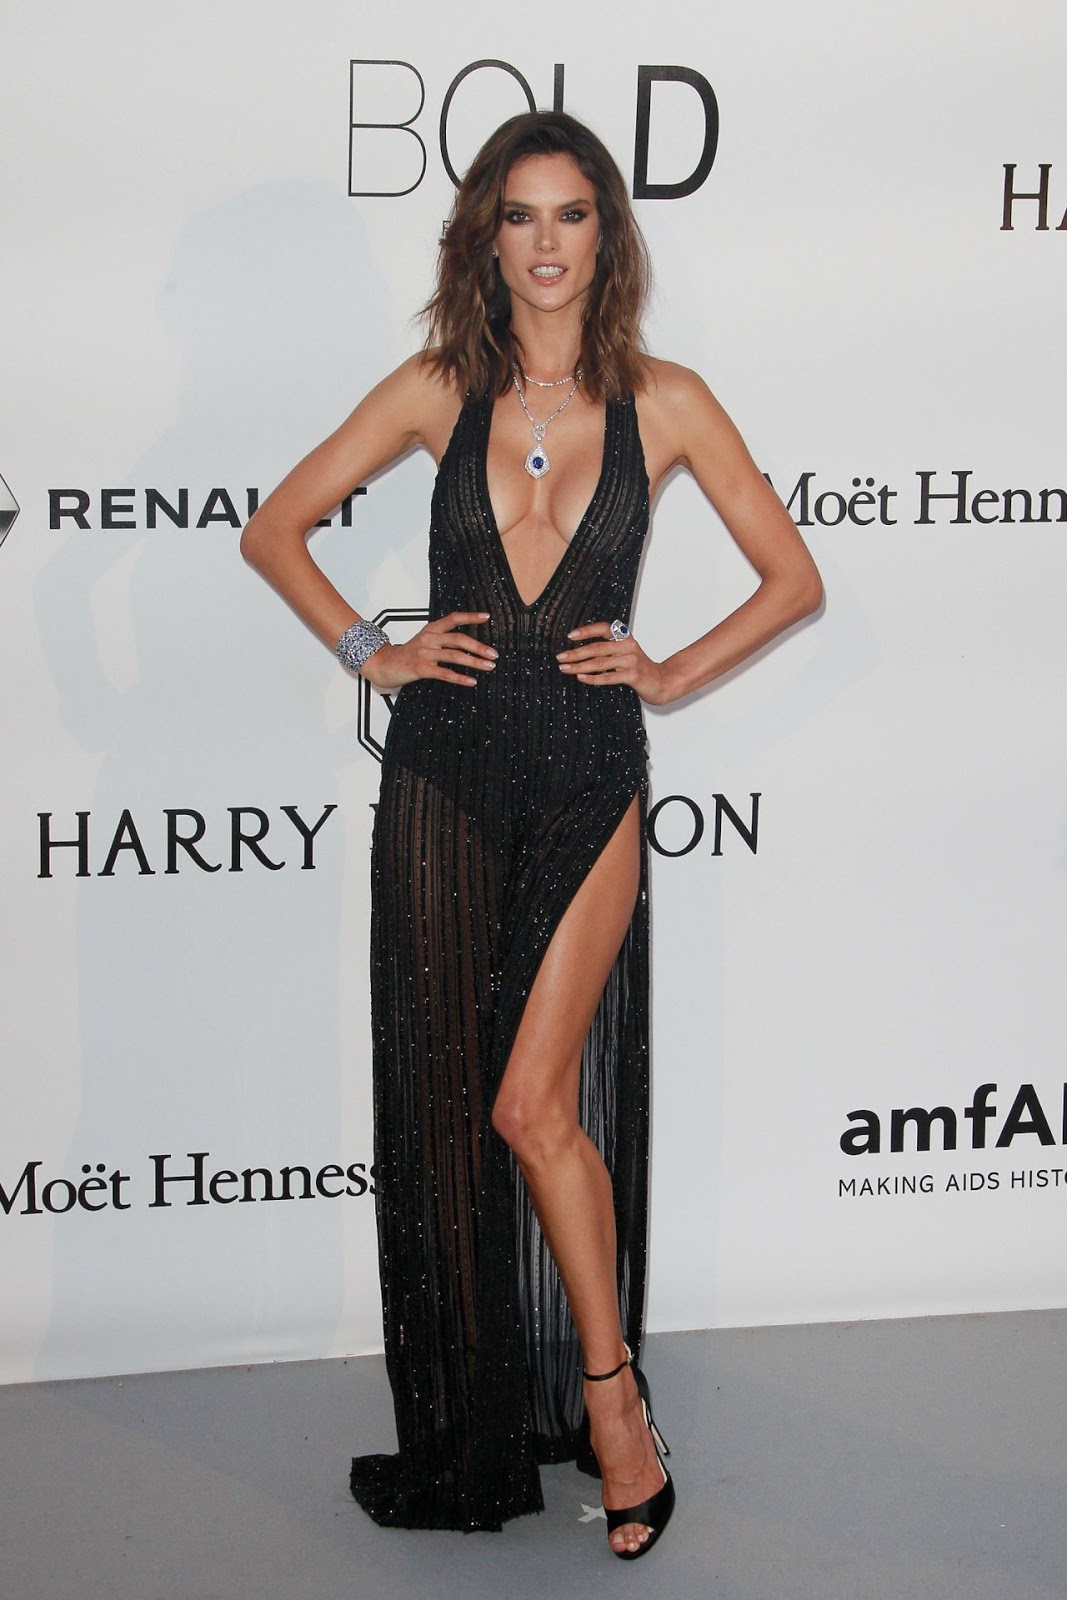 Alessandra Ambrosio opts to go braless in perilously plunging gown with dramatic thigh-slash at amfAR Gala